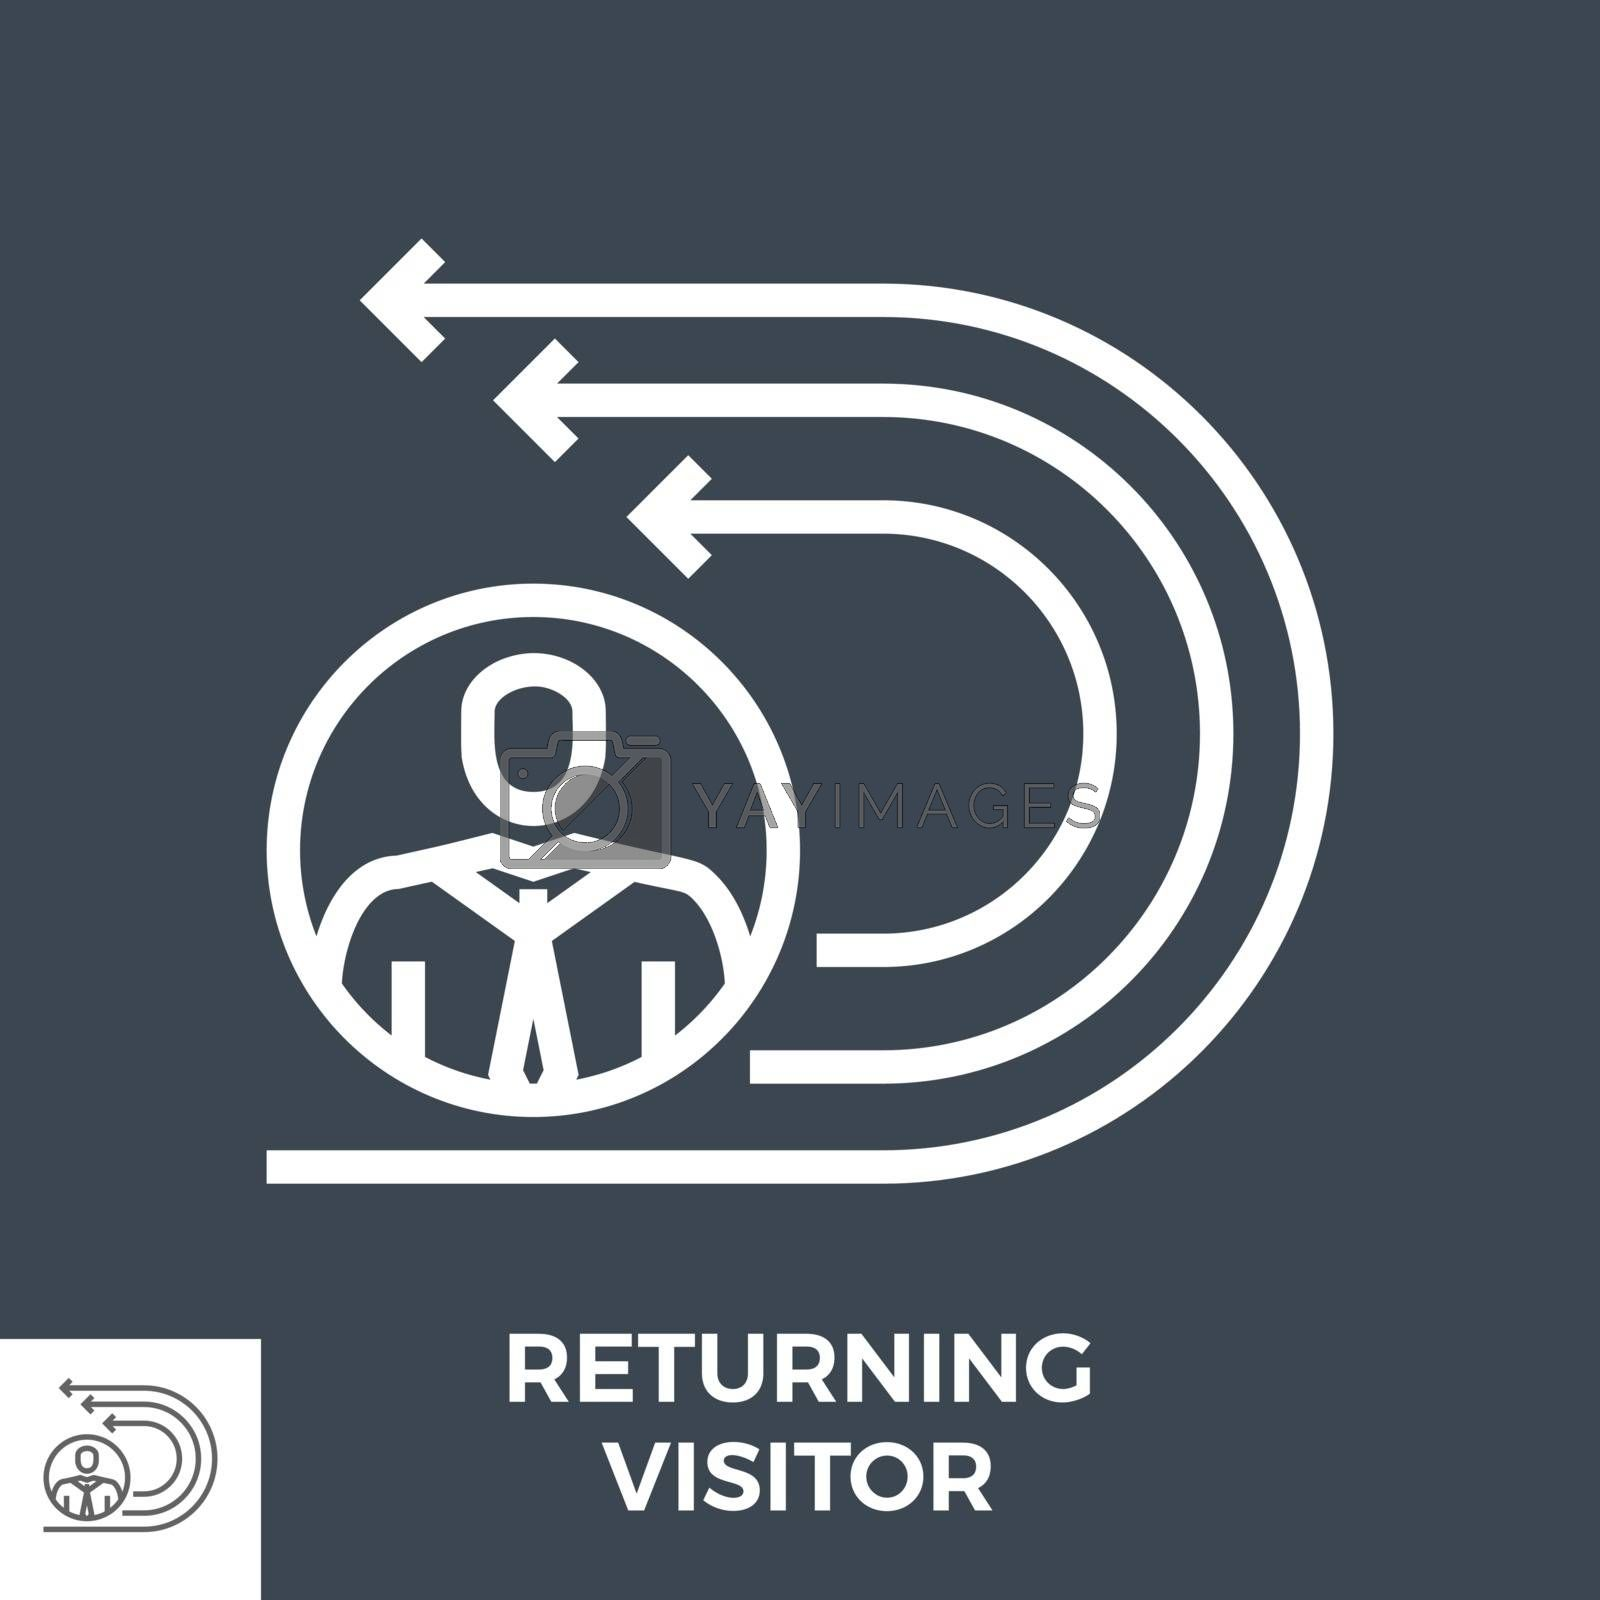 Returning Visitor Thin Line Vector Icon Isolated on the Black Background.